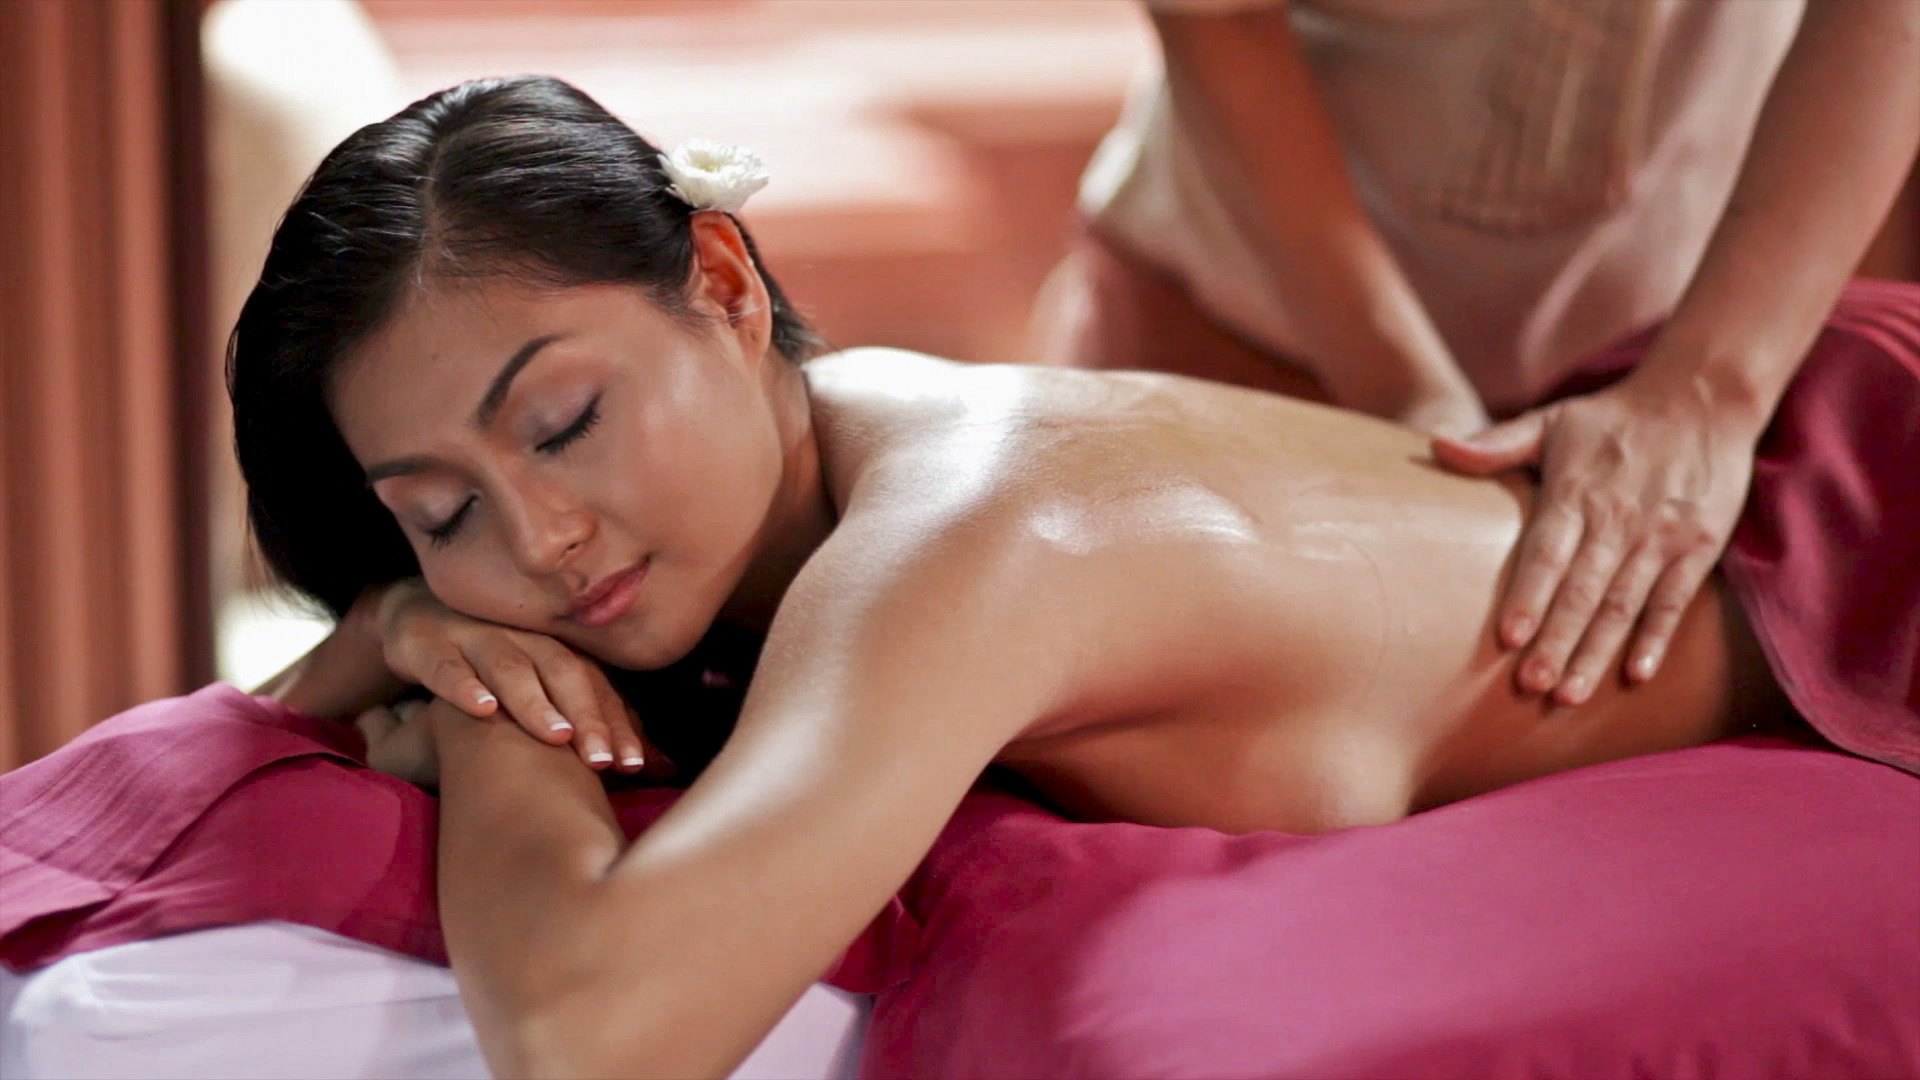 msaage sex thai massage seks